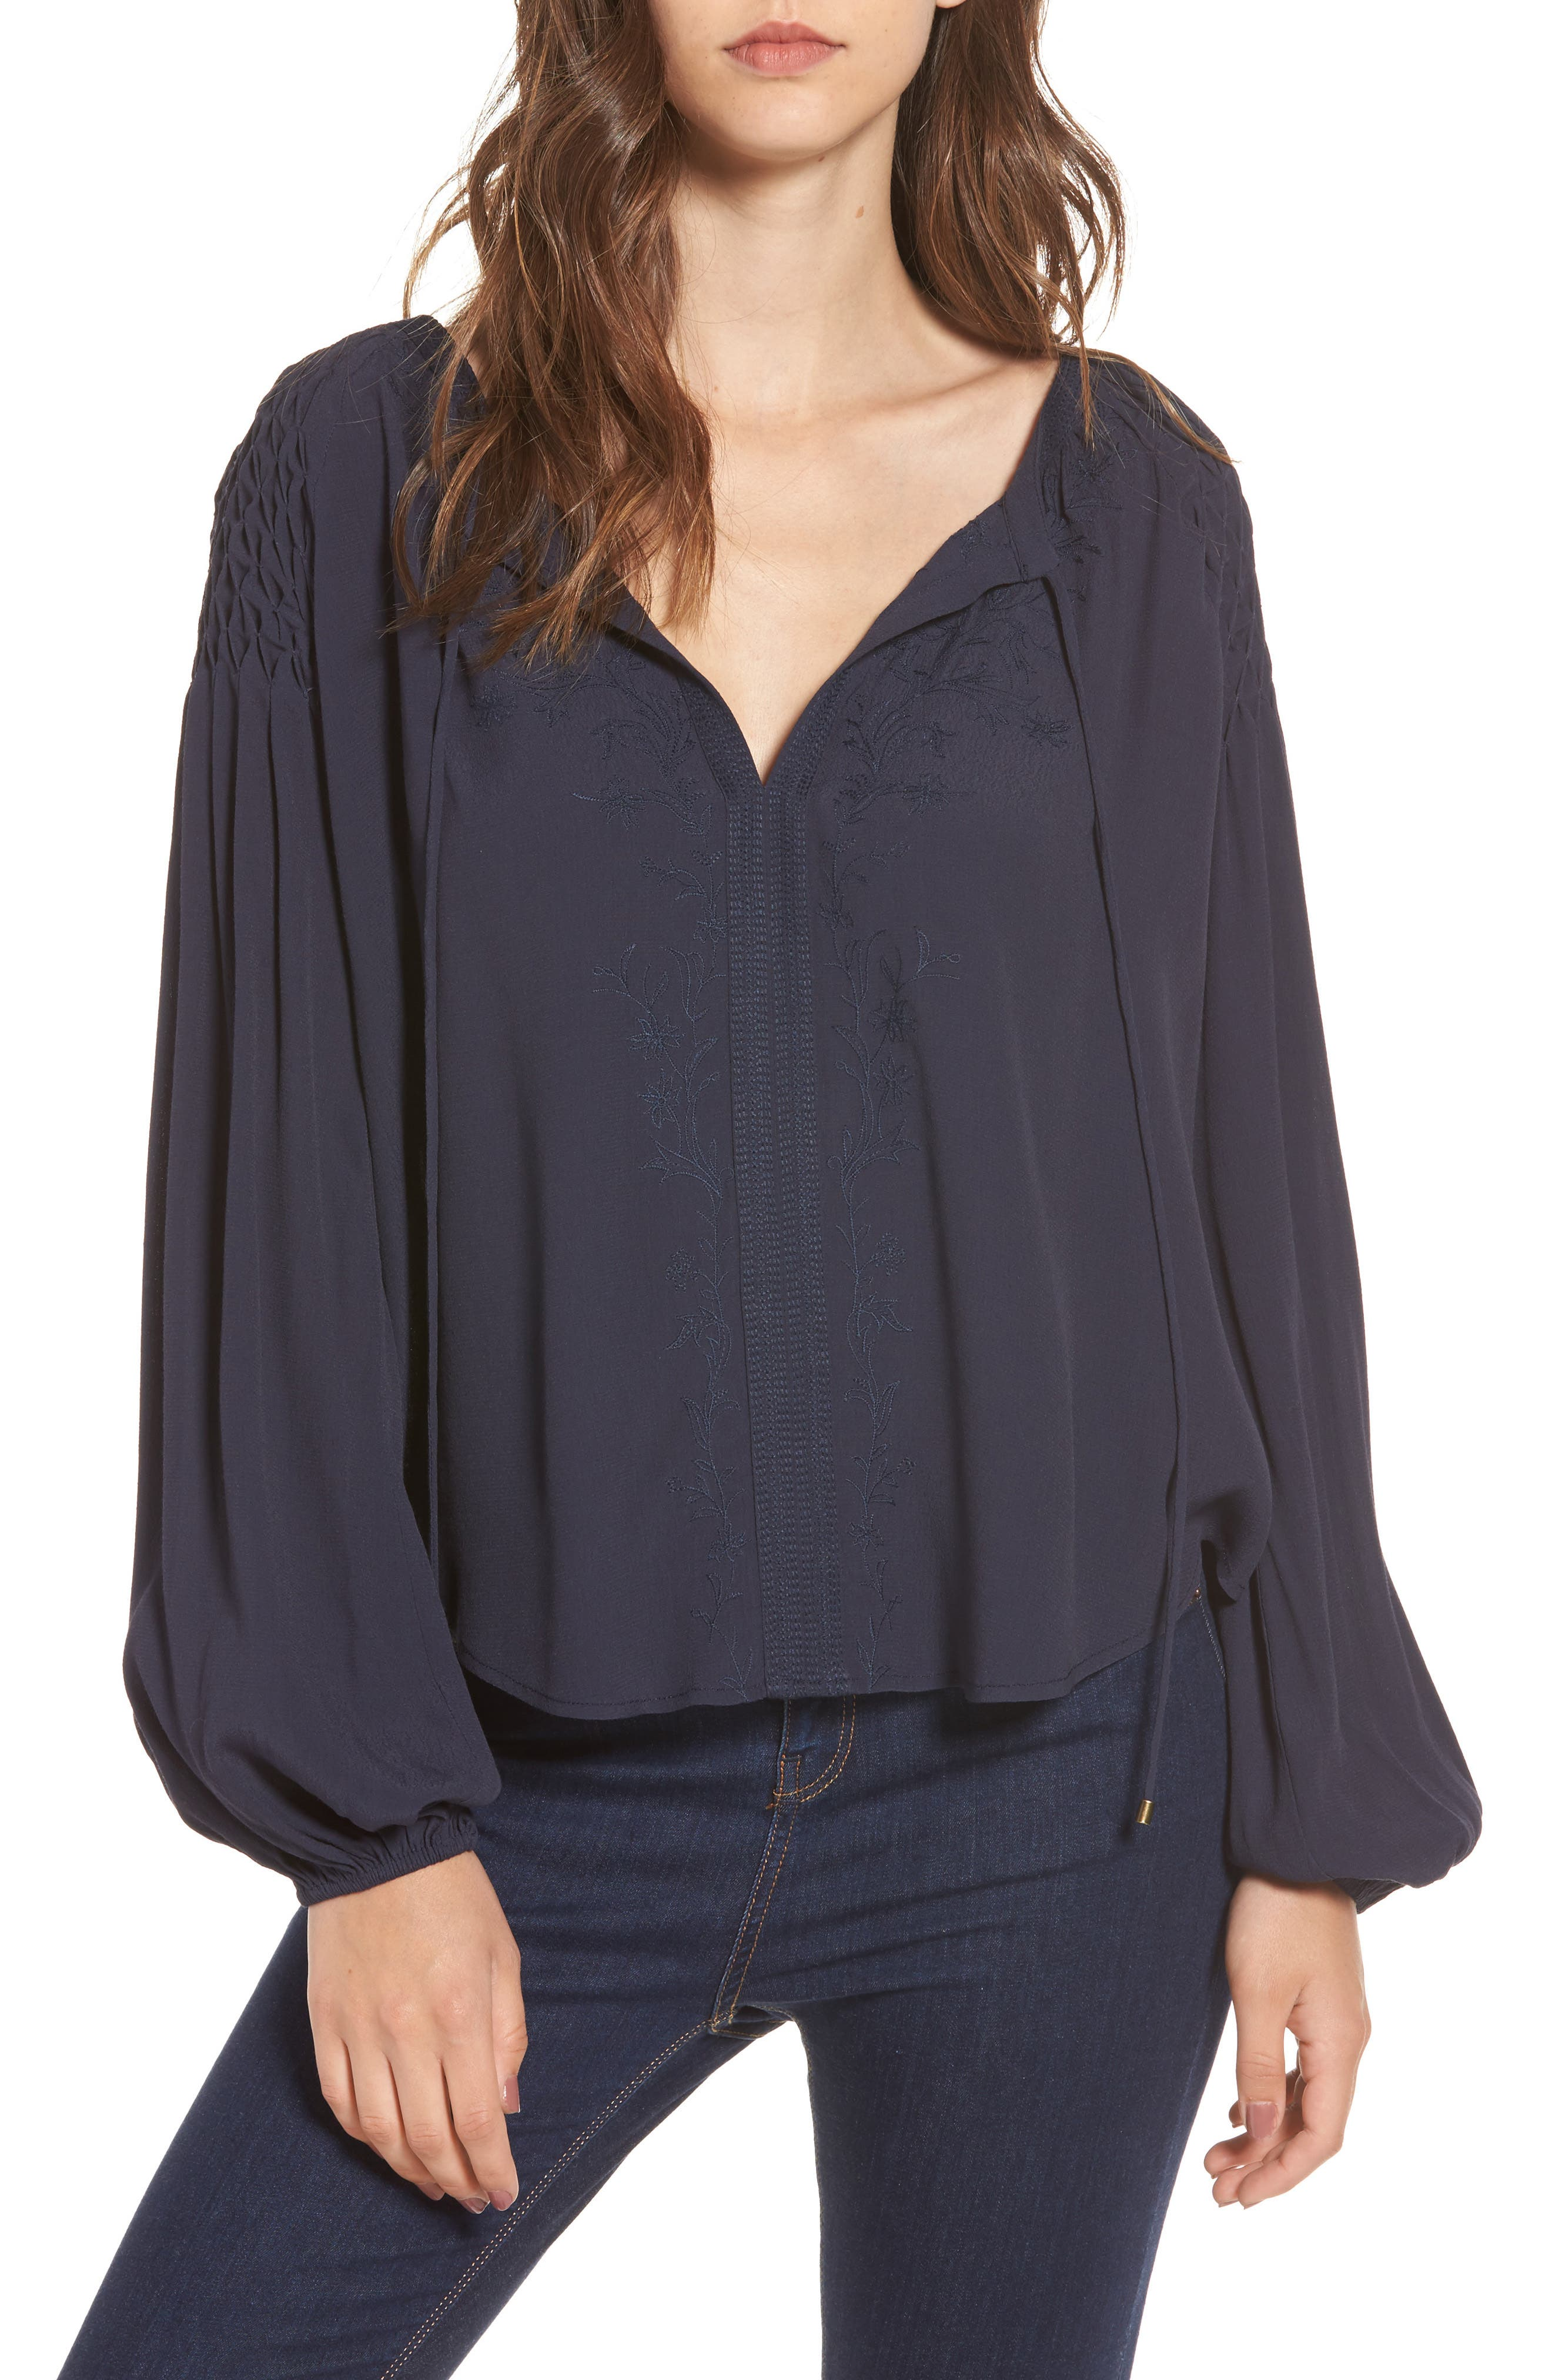 Main Image - ASTR the Label Claudine Blouse